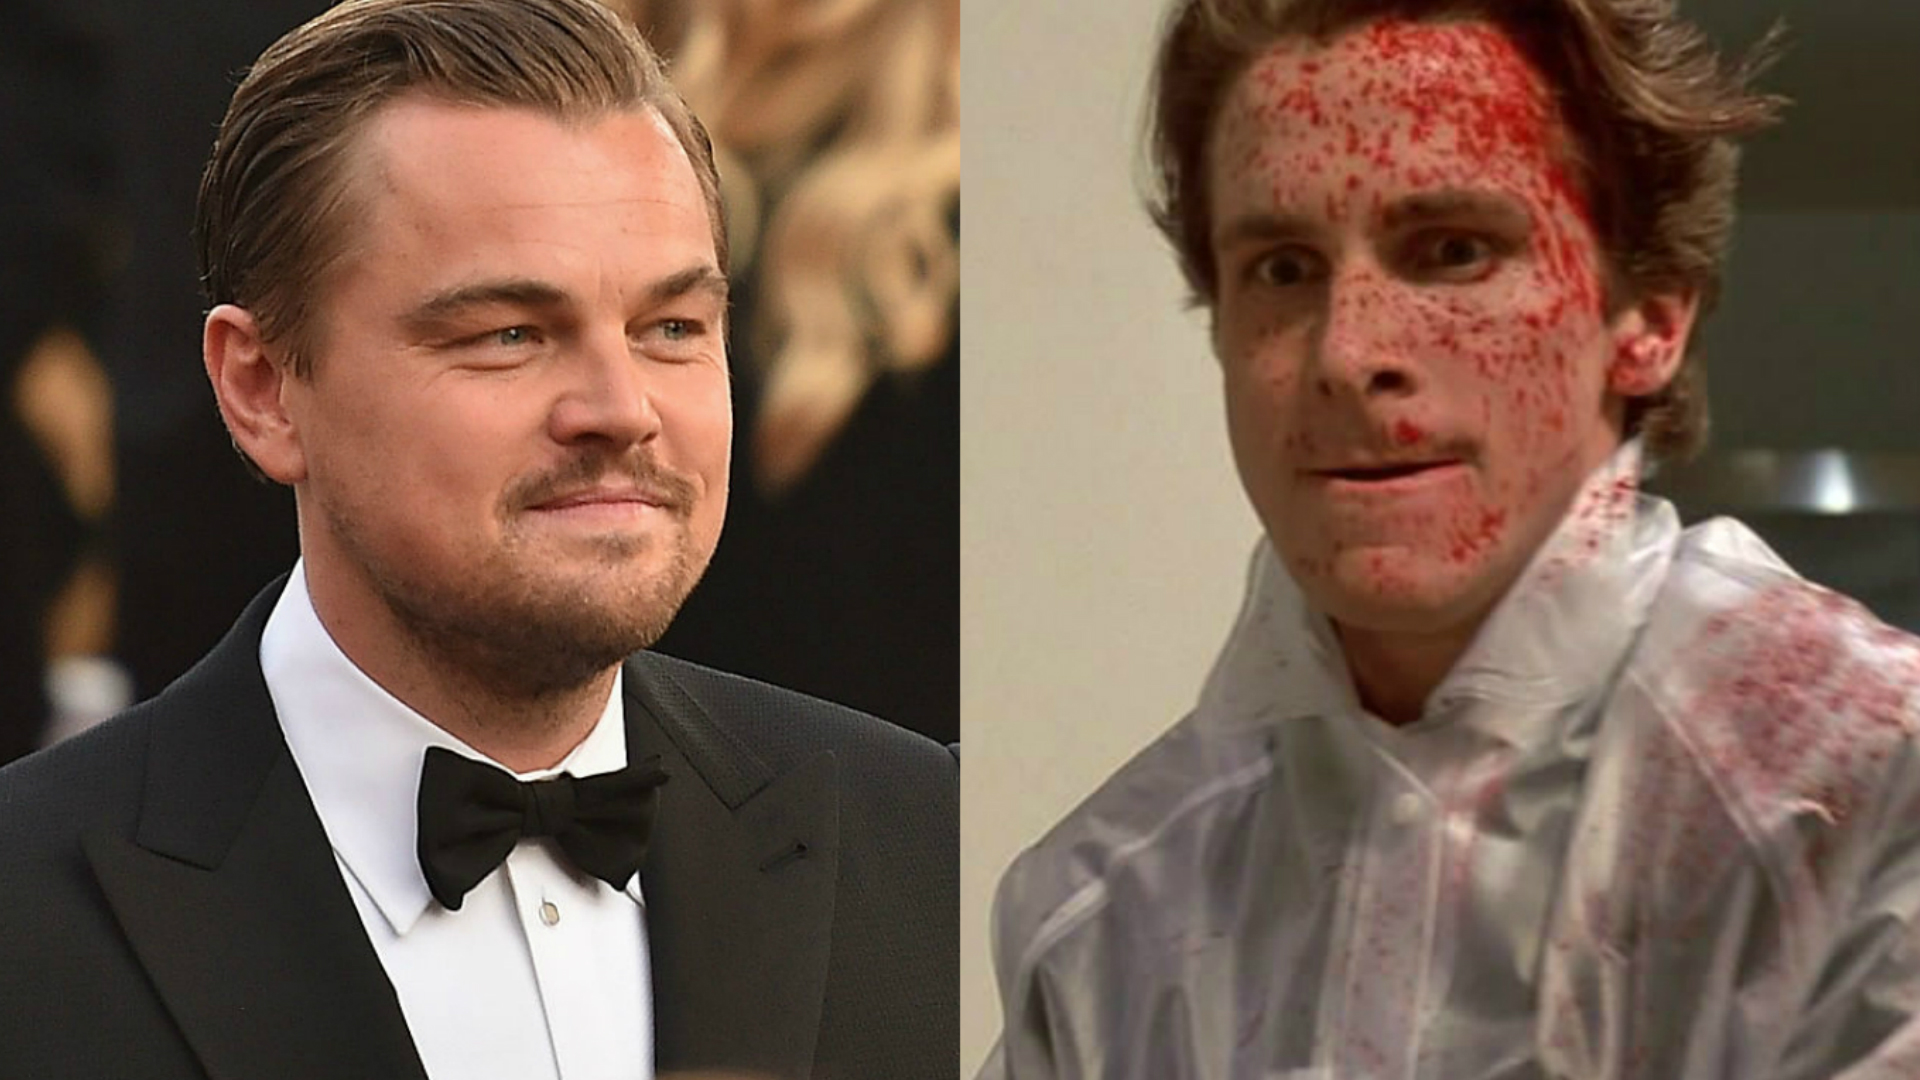 Leonardo DiCaprio and American Psycho's Christian Bale